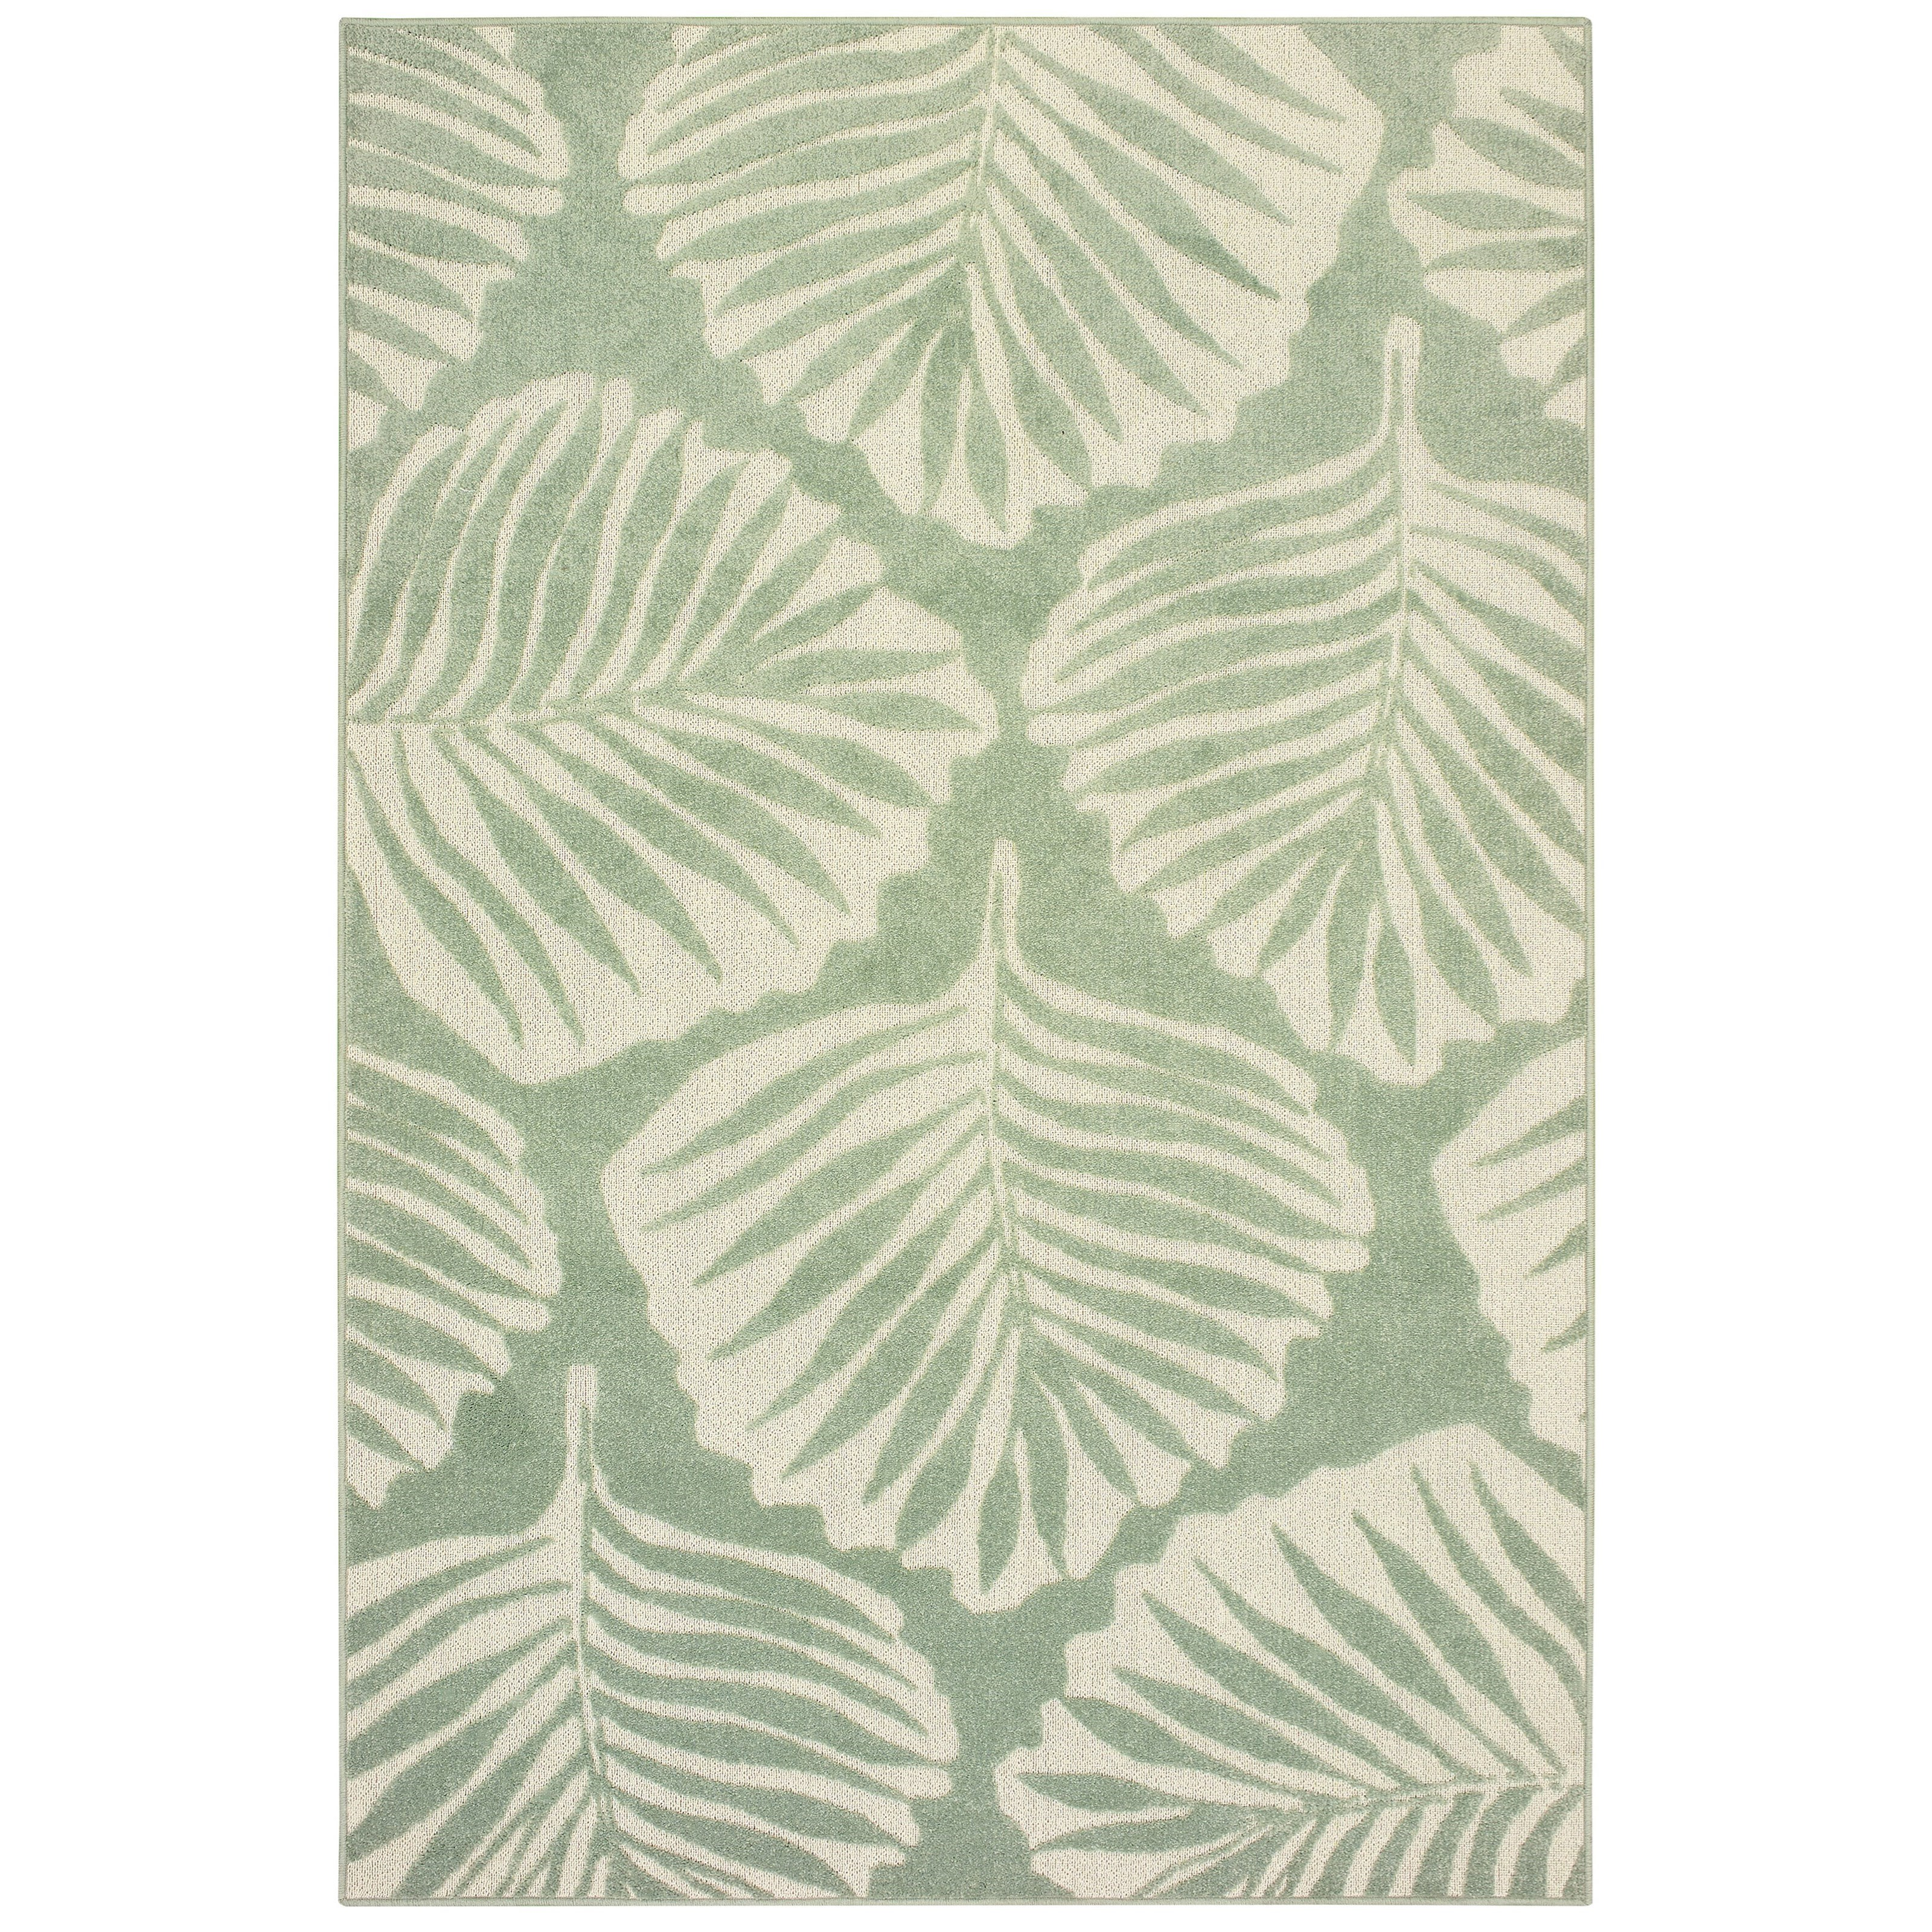 "Barbados 7'10"" X 10' Rug by Oriental Weavers at HomeWorld Furniture"